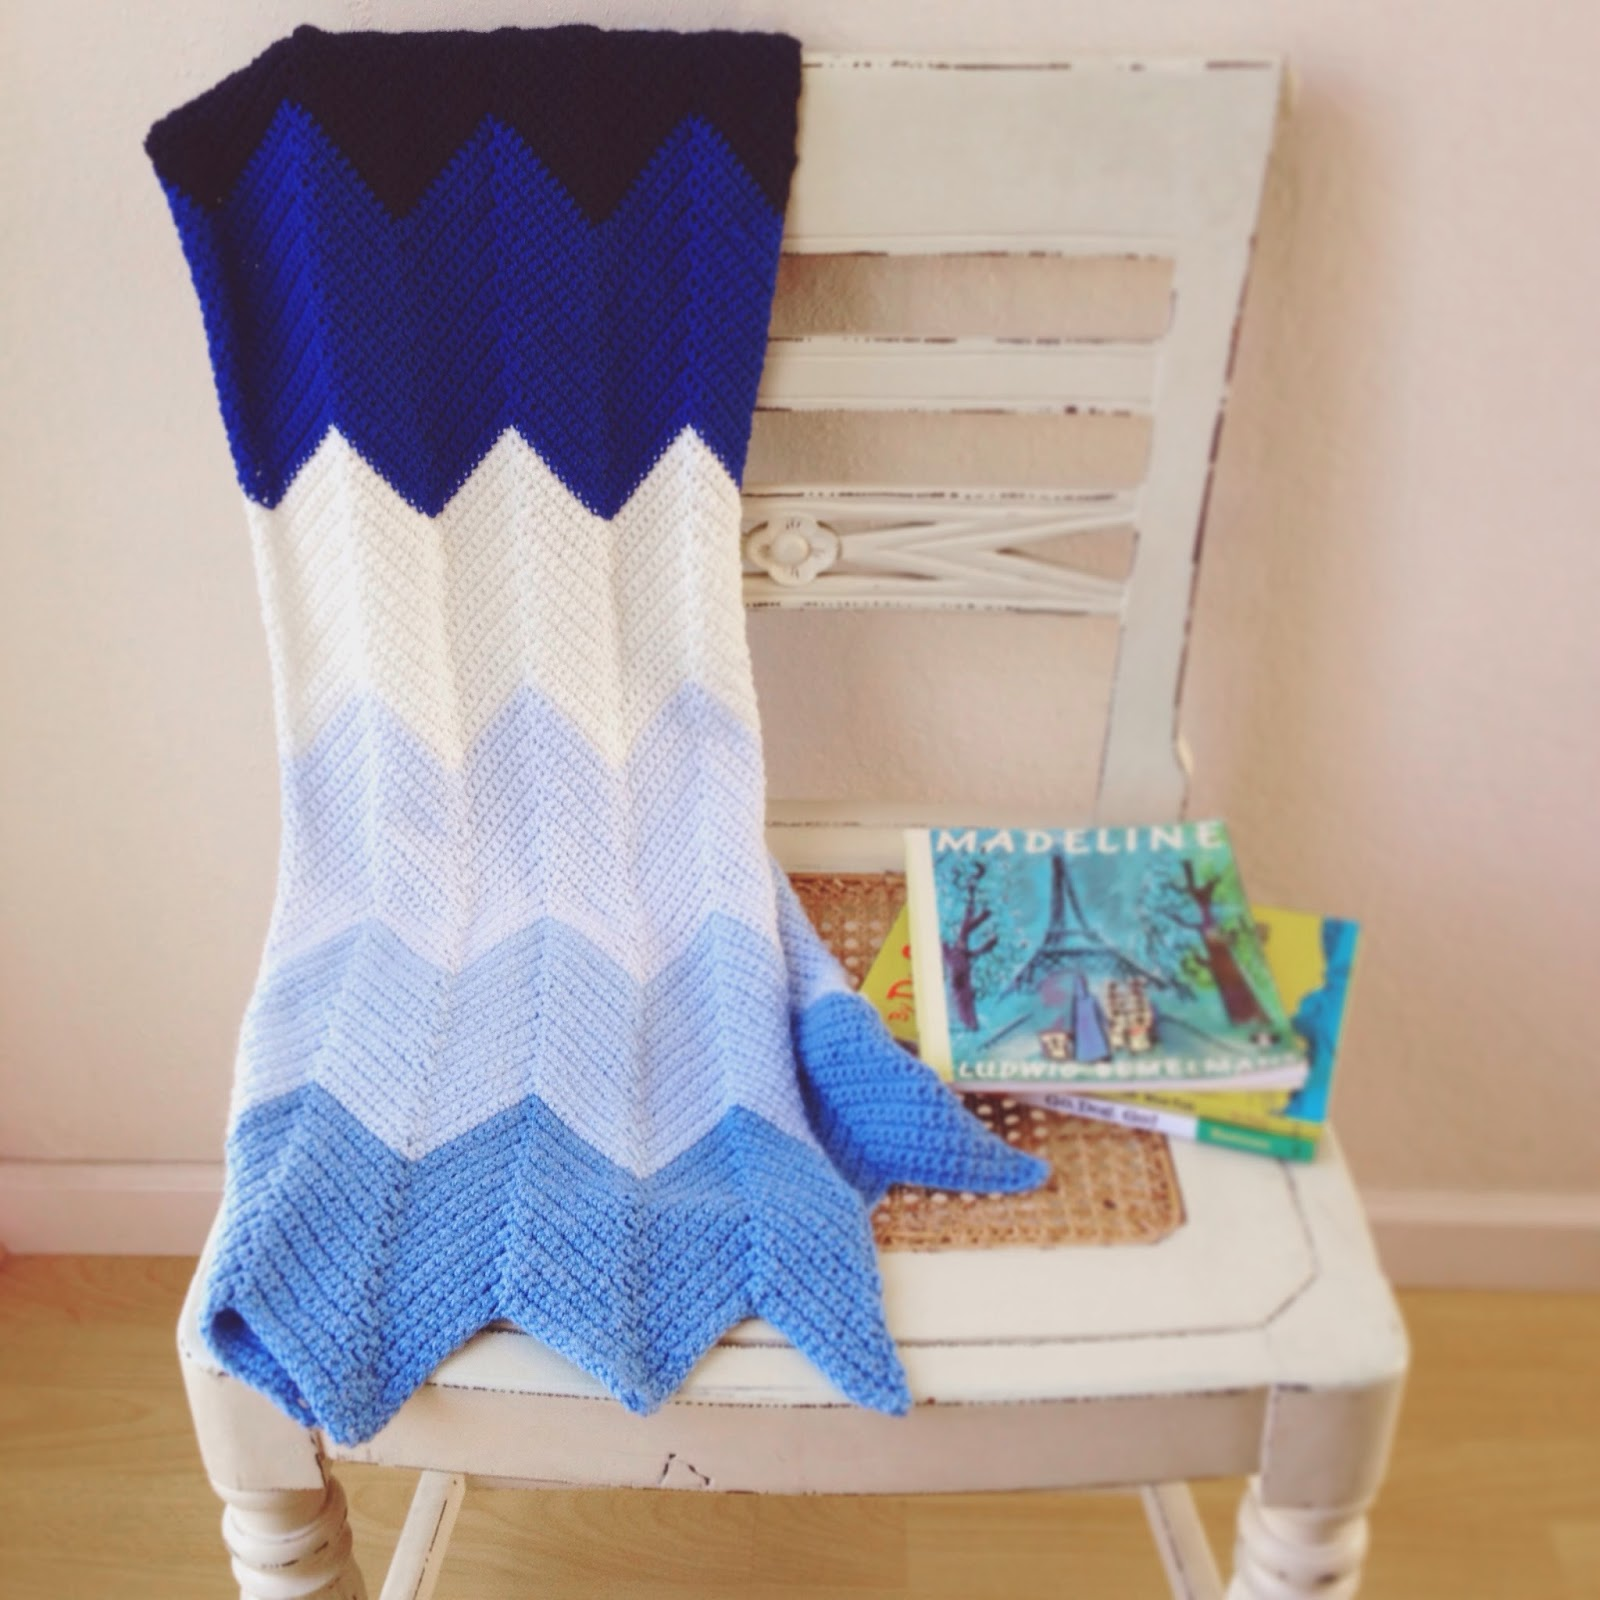 Free Baby Chevron Crochet Pattern : Lady By The Bay: Crocheted Chevron Baby Blanket Pattern